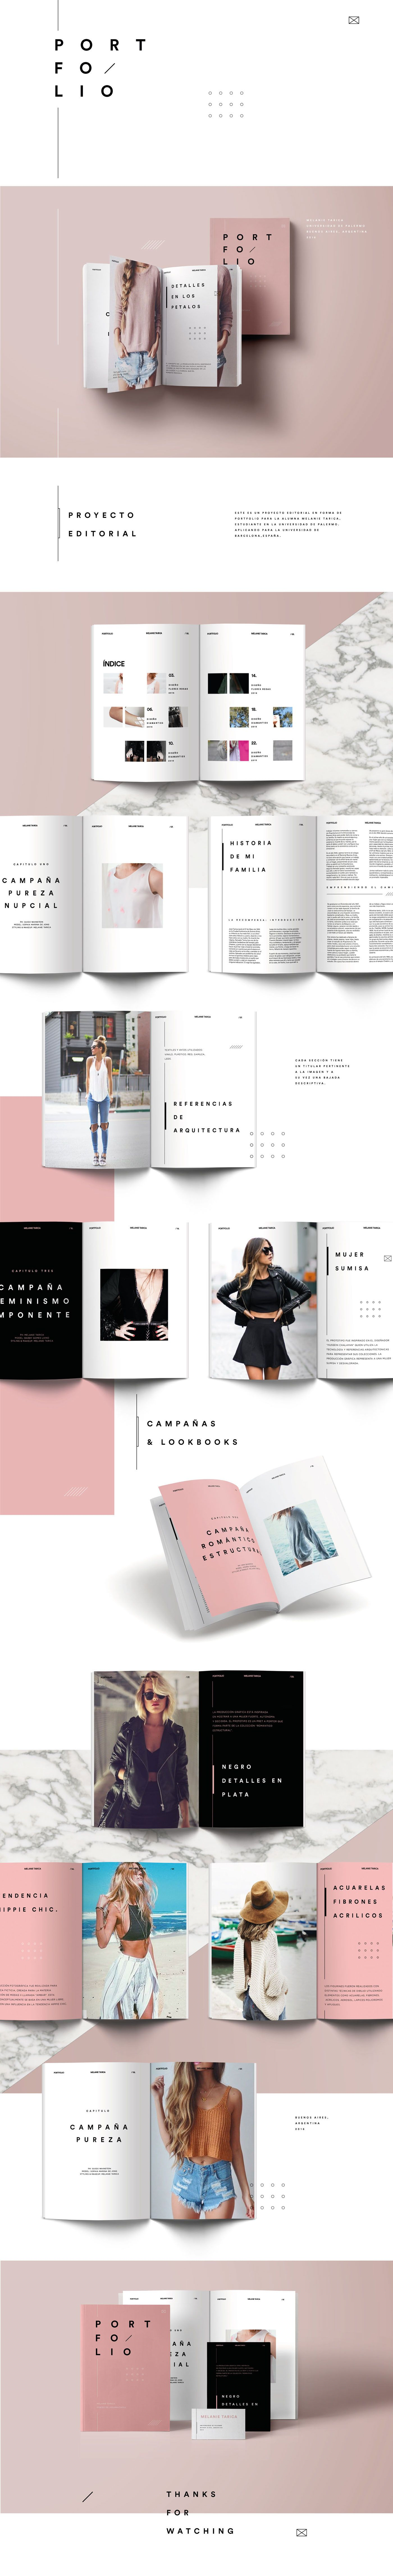 Showcase And Discover Creative Work On The World S Leading Online Platform For Creative Indu Portfolio Design Fashion Design Portfolio Fashion Editorial Layout